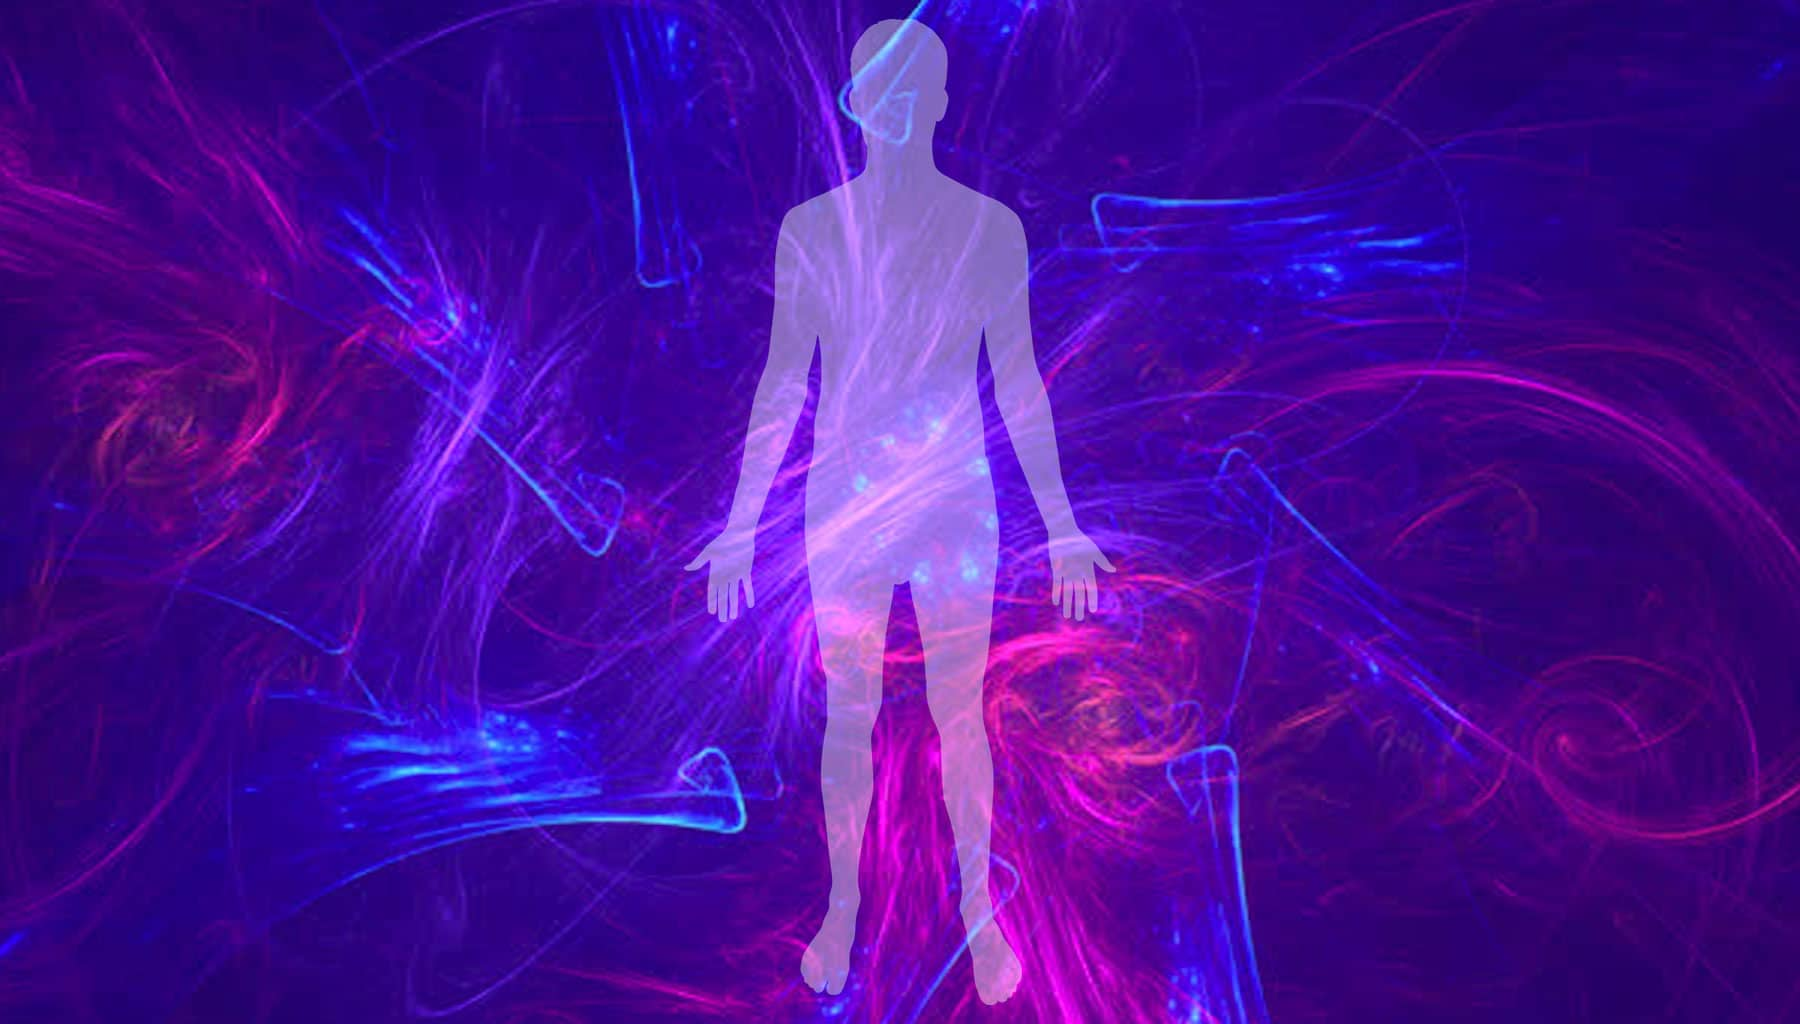 Energy field astral projection.